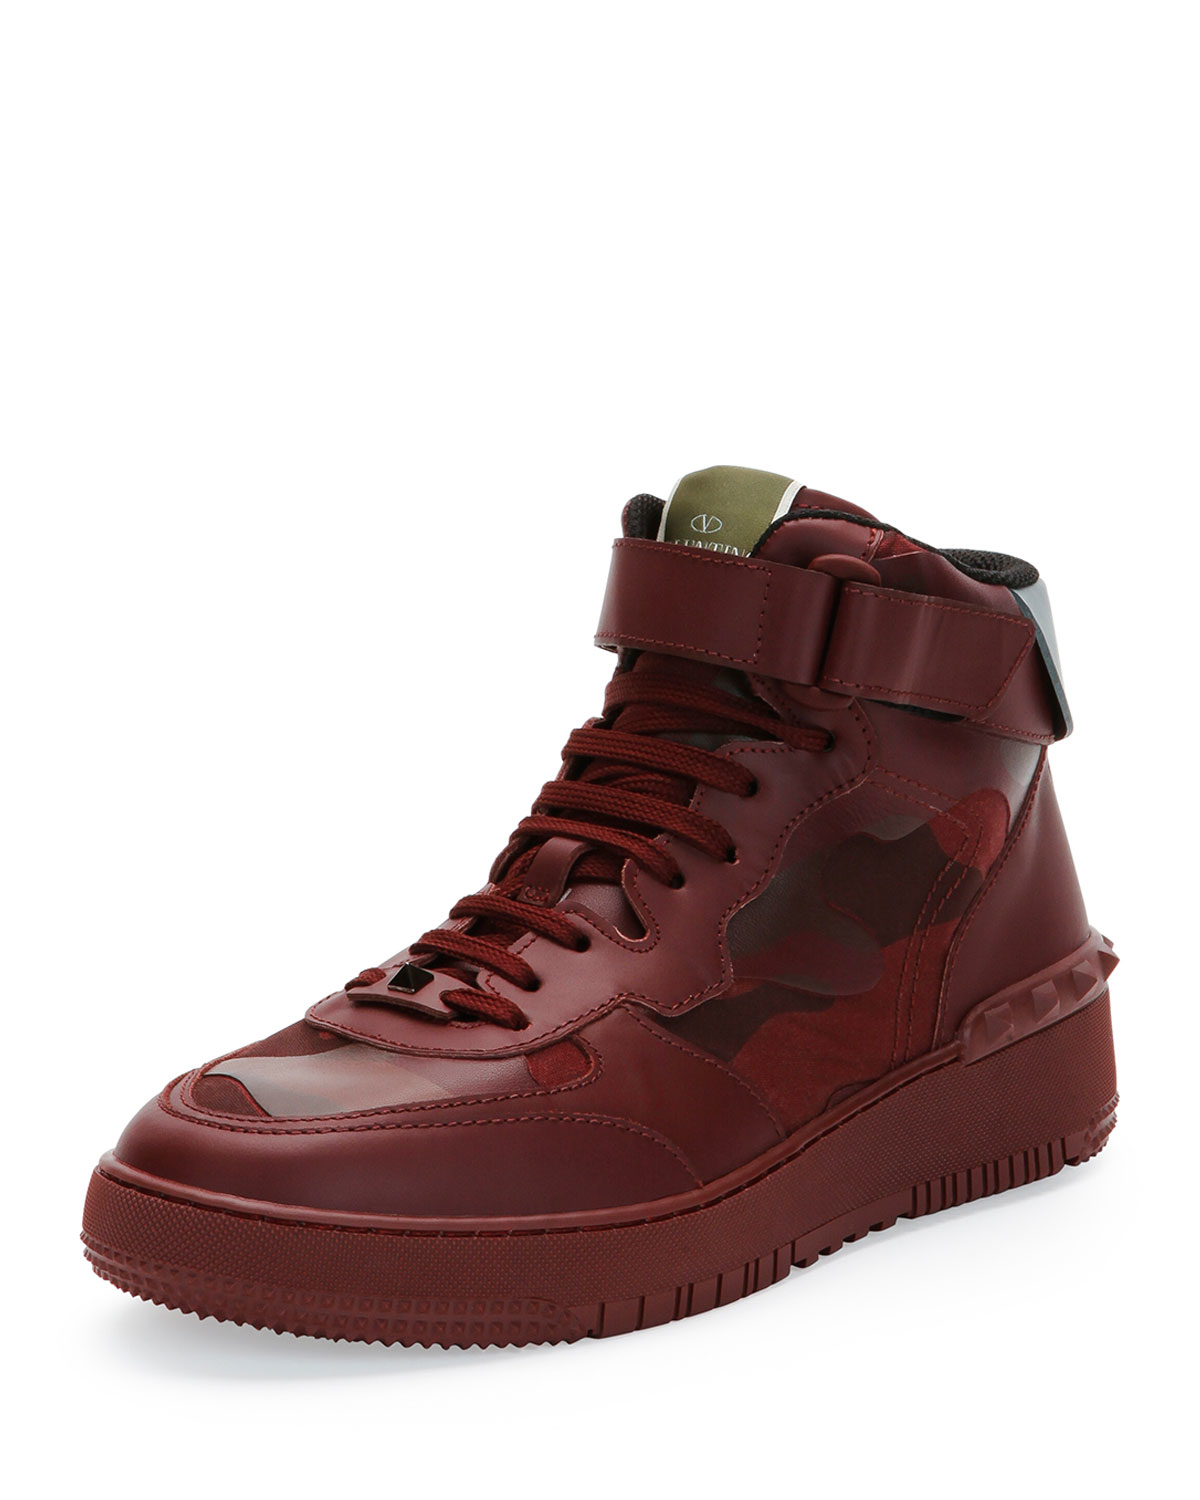 Free shipping on Tory Burch at trueffil983.gq Shop for clothing, shoes and accessories. Totally free shipping & returns.